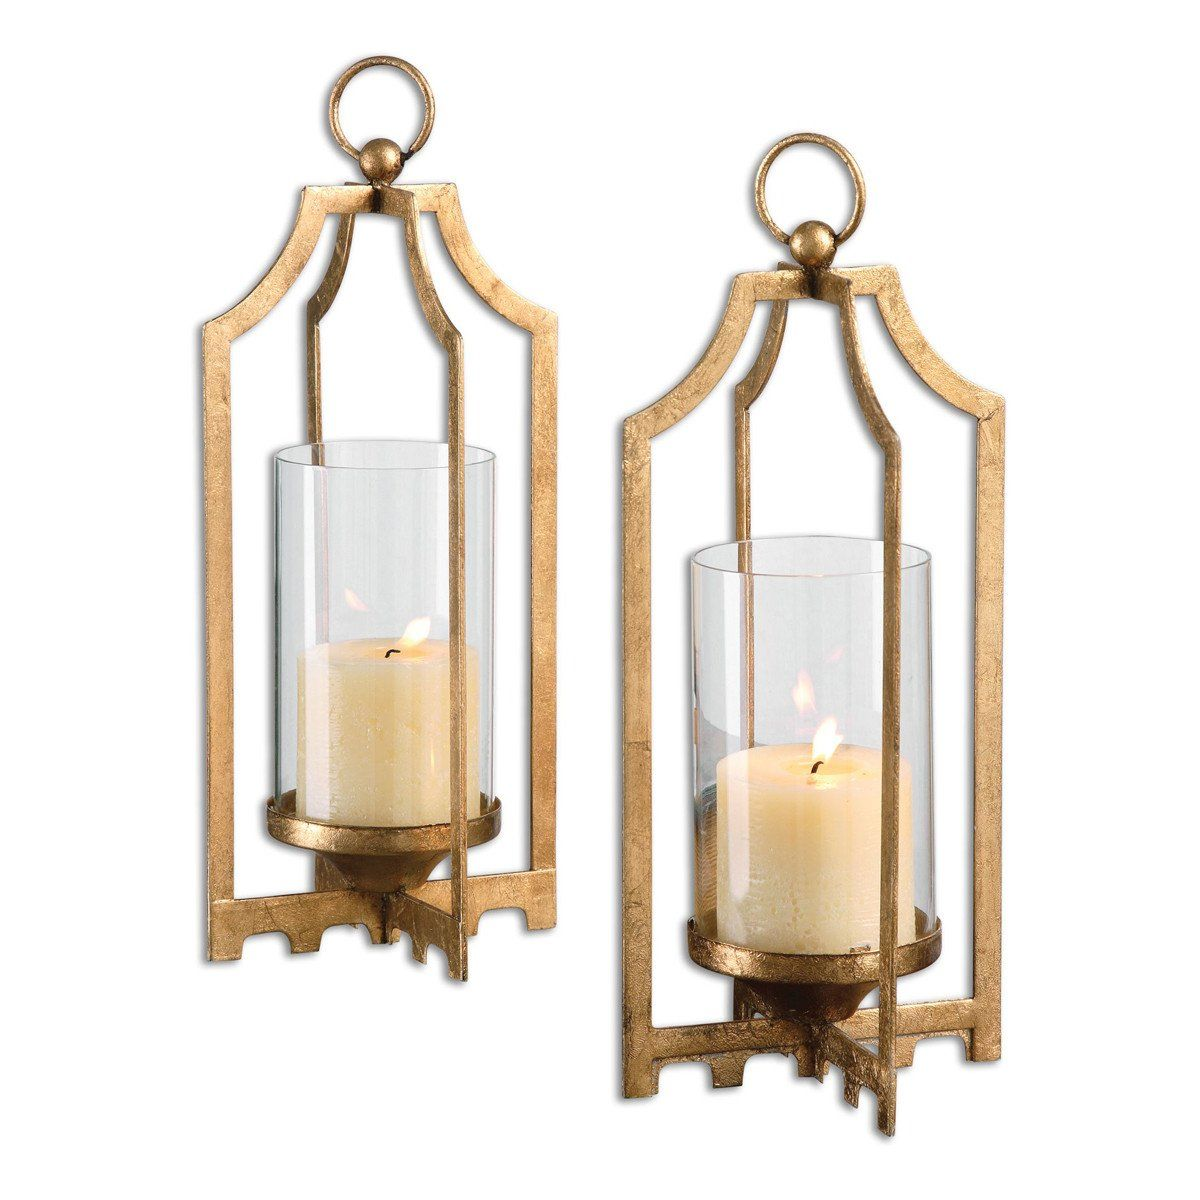 Lucy Gold Candleholders, Set of 2 is part of Gold Home Accessories Life - Decor Accents, gold, contemporary, Candleholders, Lucy Gold Candleholders, Set of 2, Uttermost, Metal, Glass, Fratantoni Lifestyles